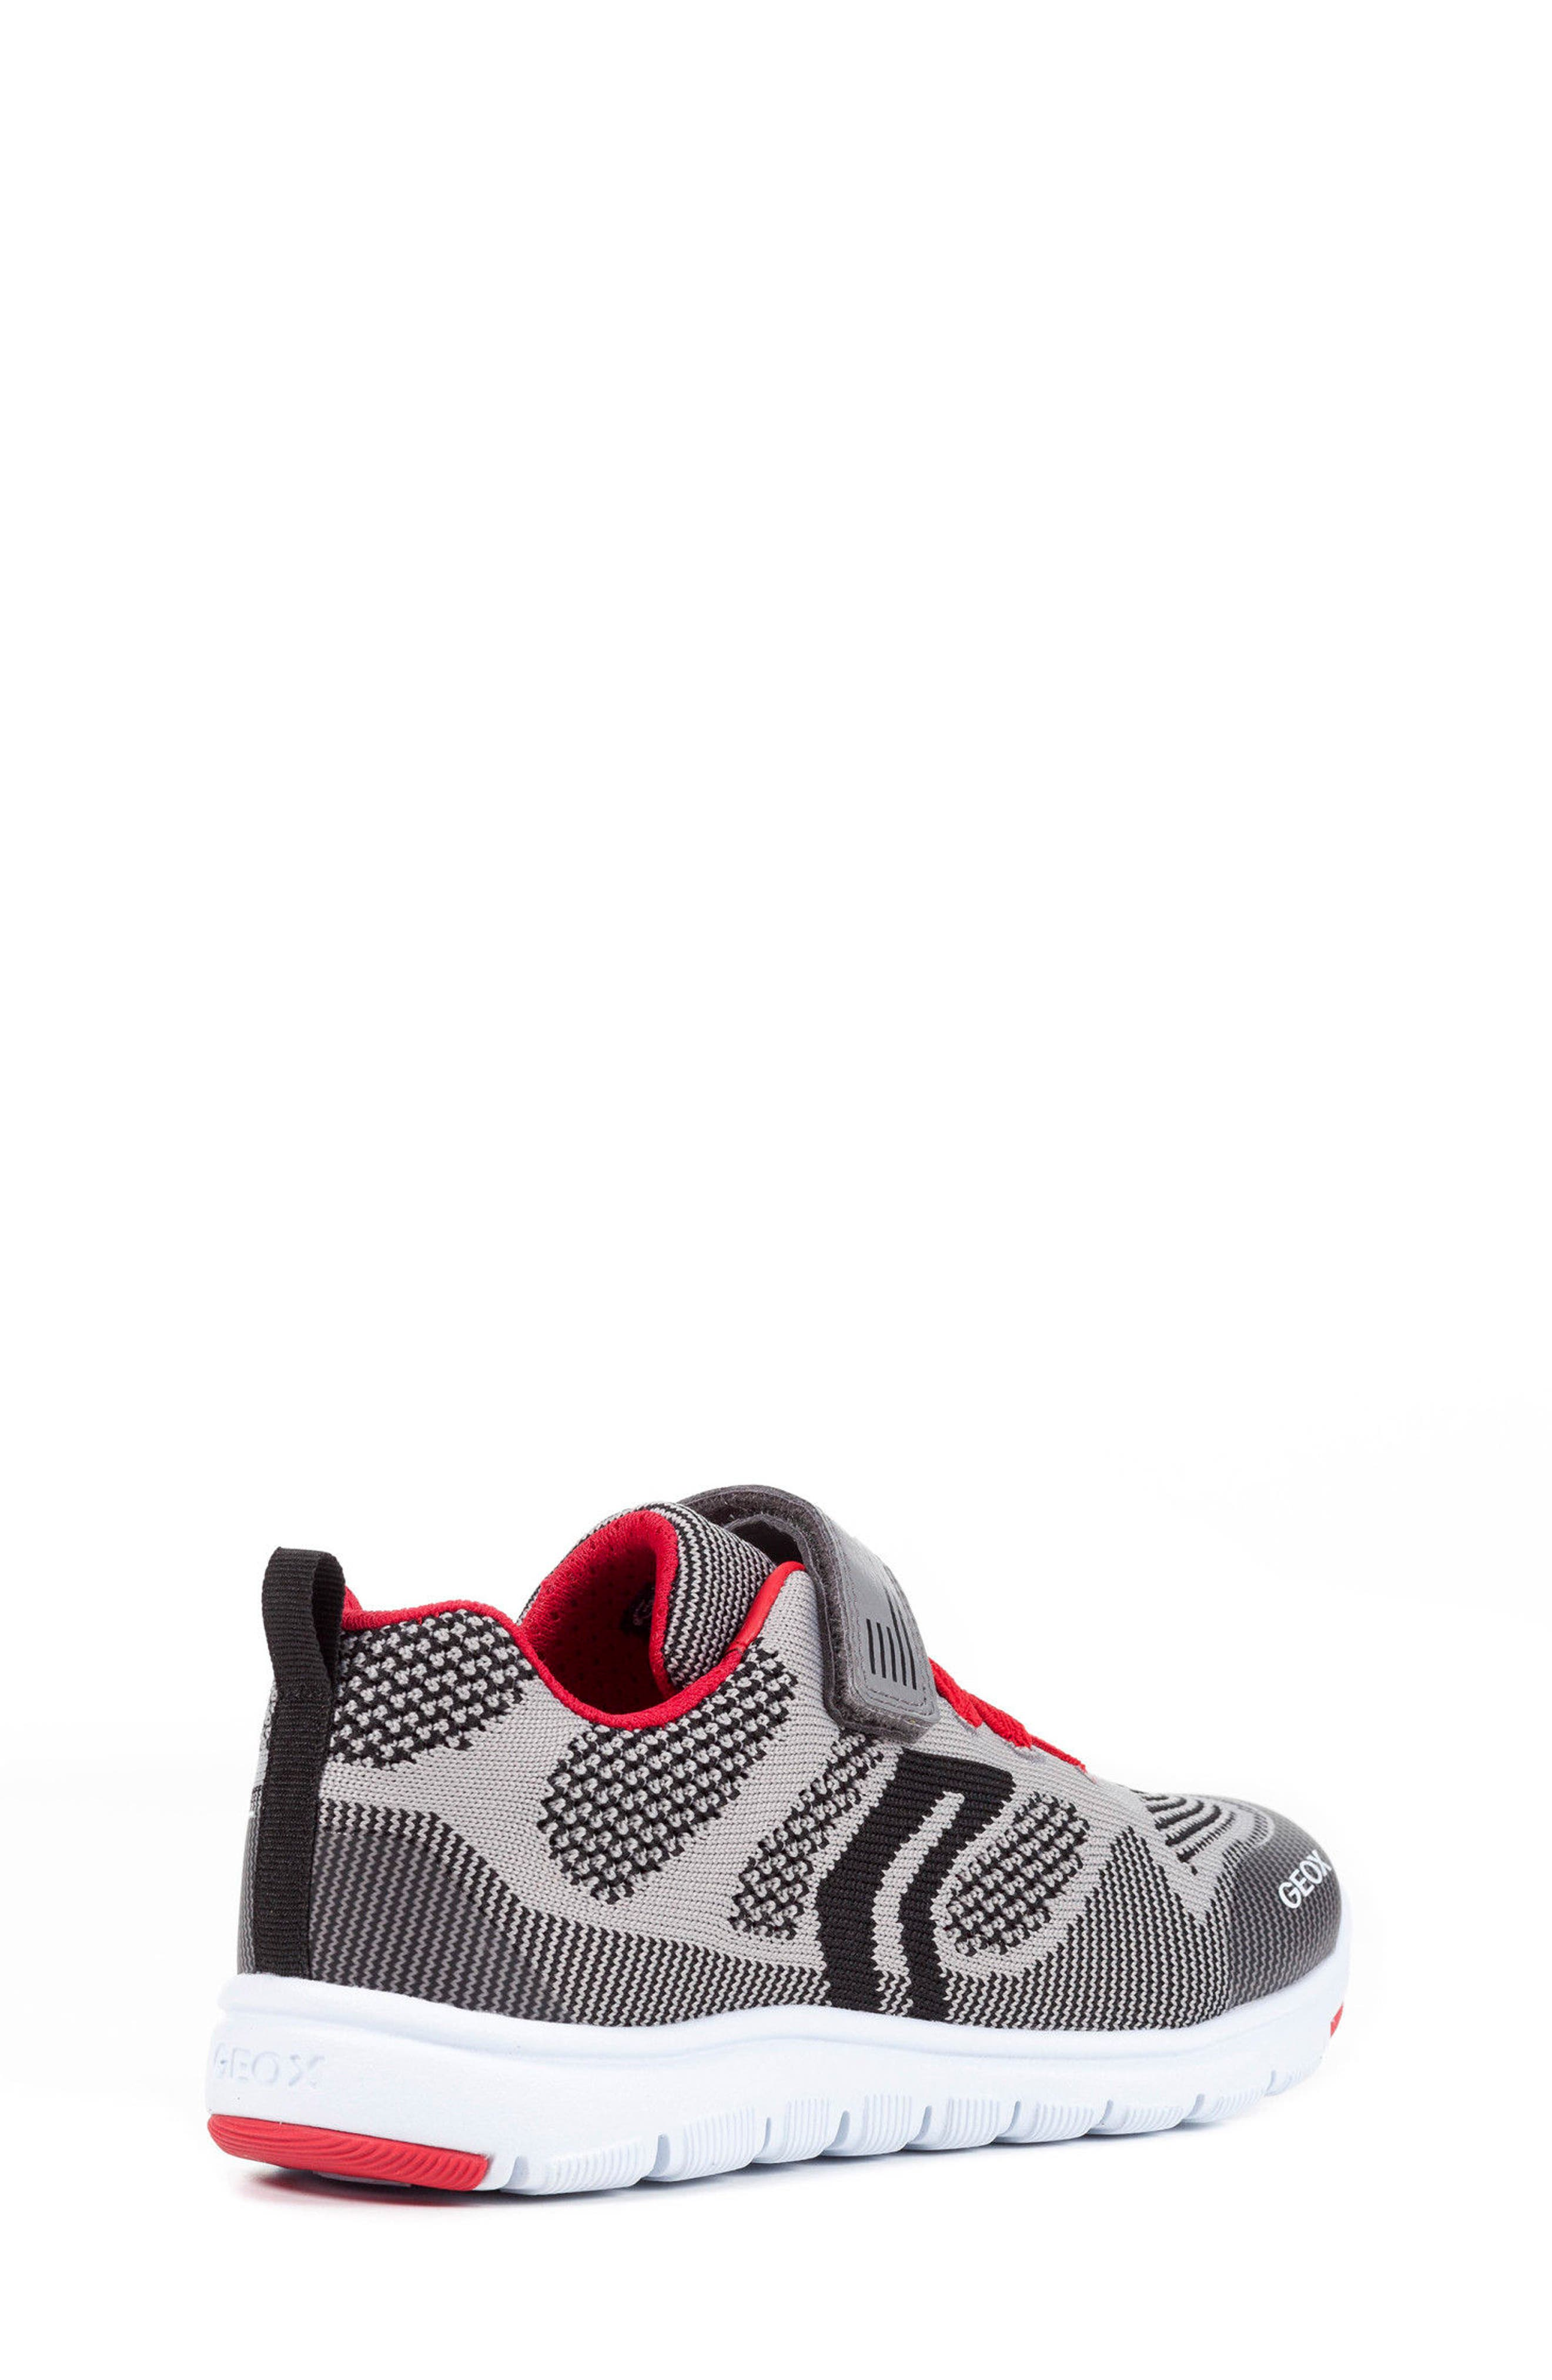 Xunday Low Top Woven Sneaker,                             Alternate thumbnail 2, color,                             063